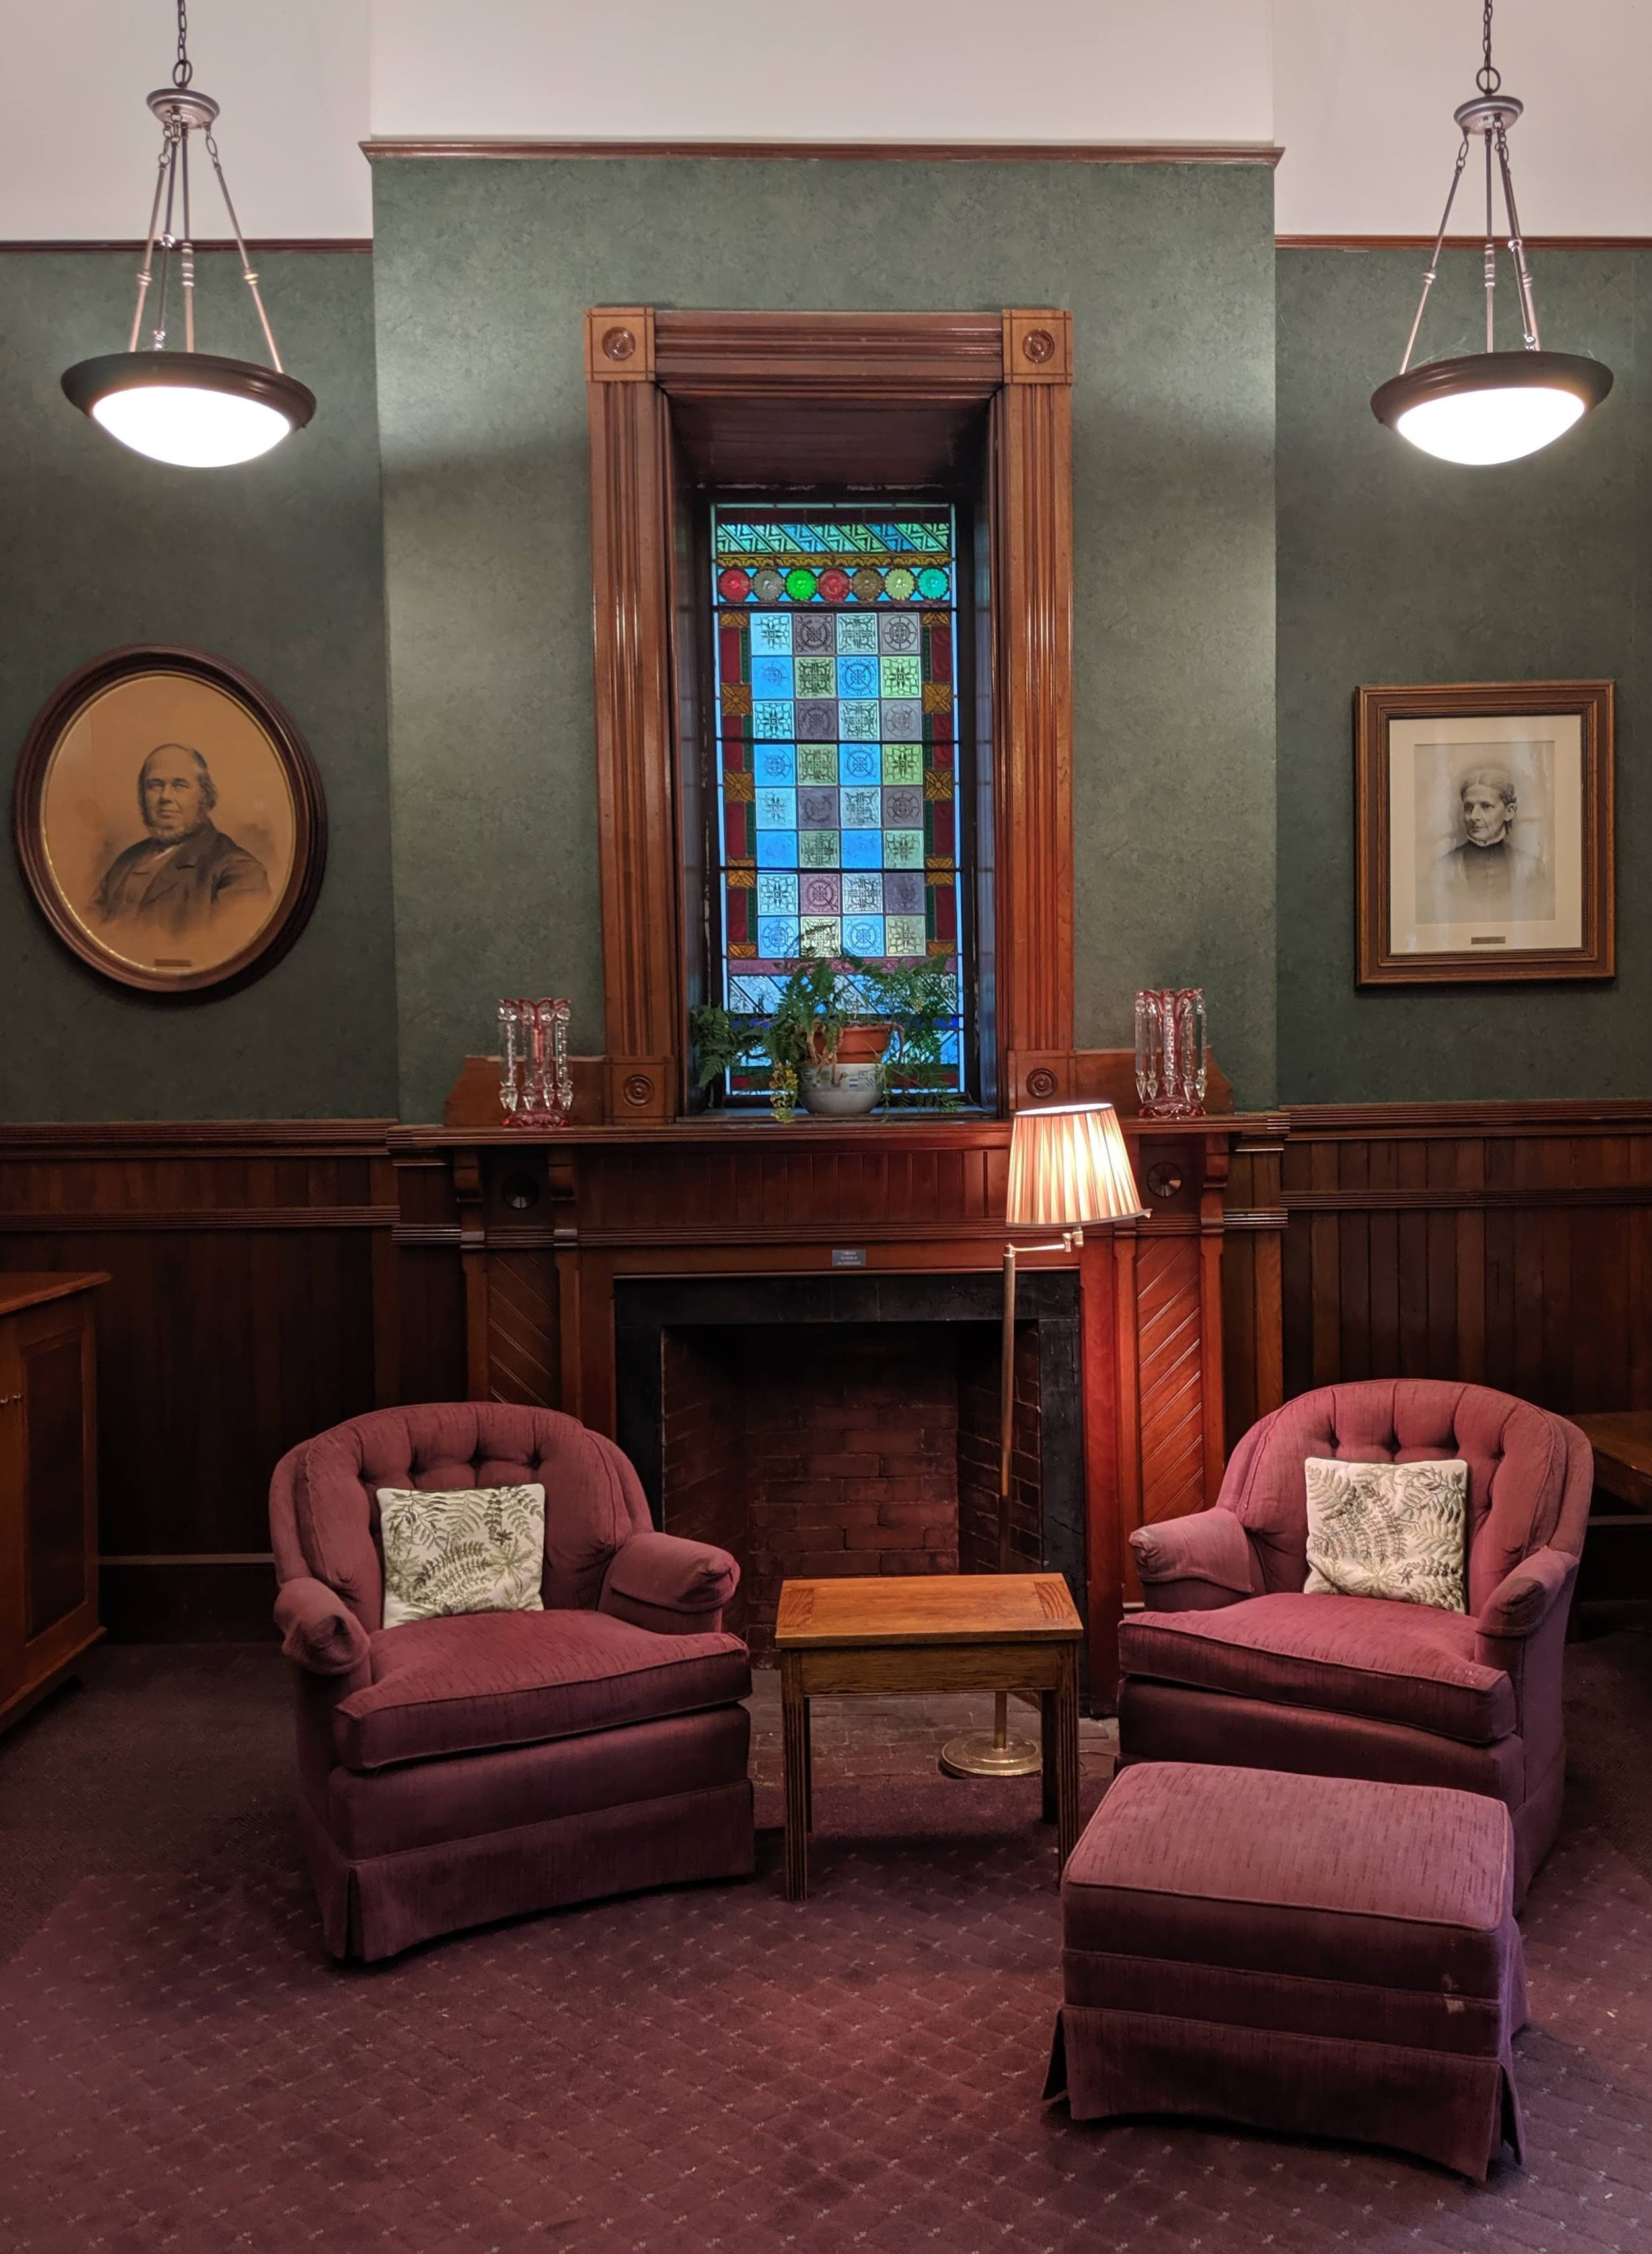 A sweet seating area at the Brewster Ladies' Library